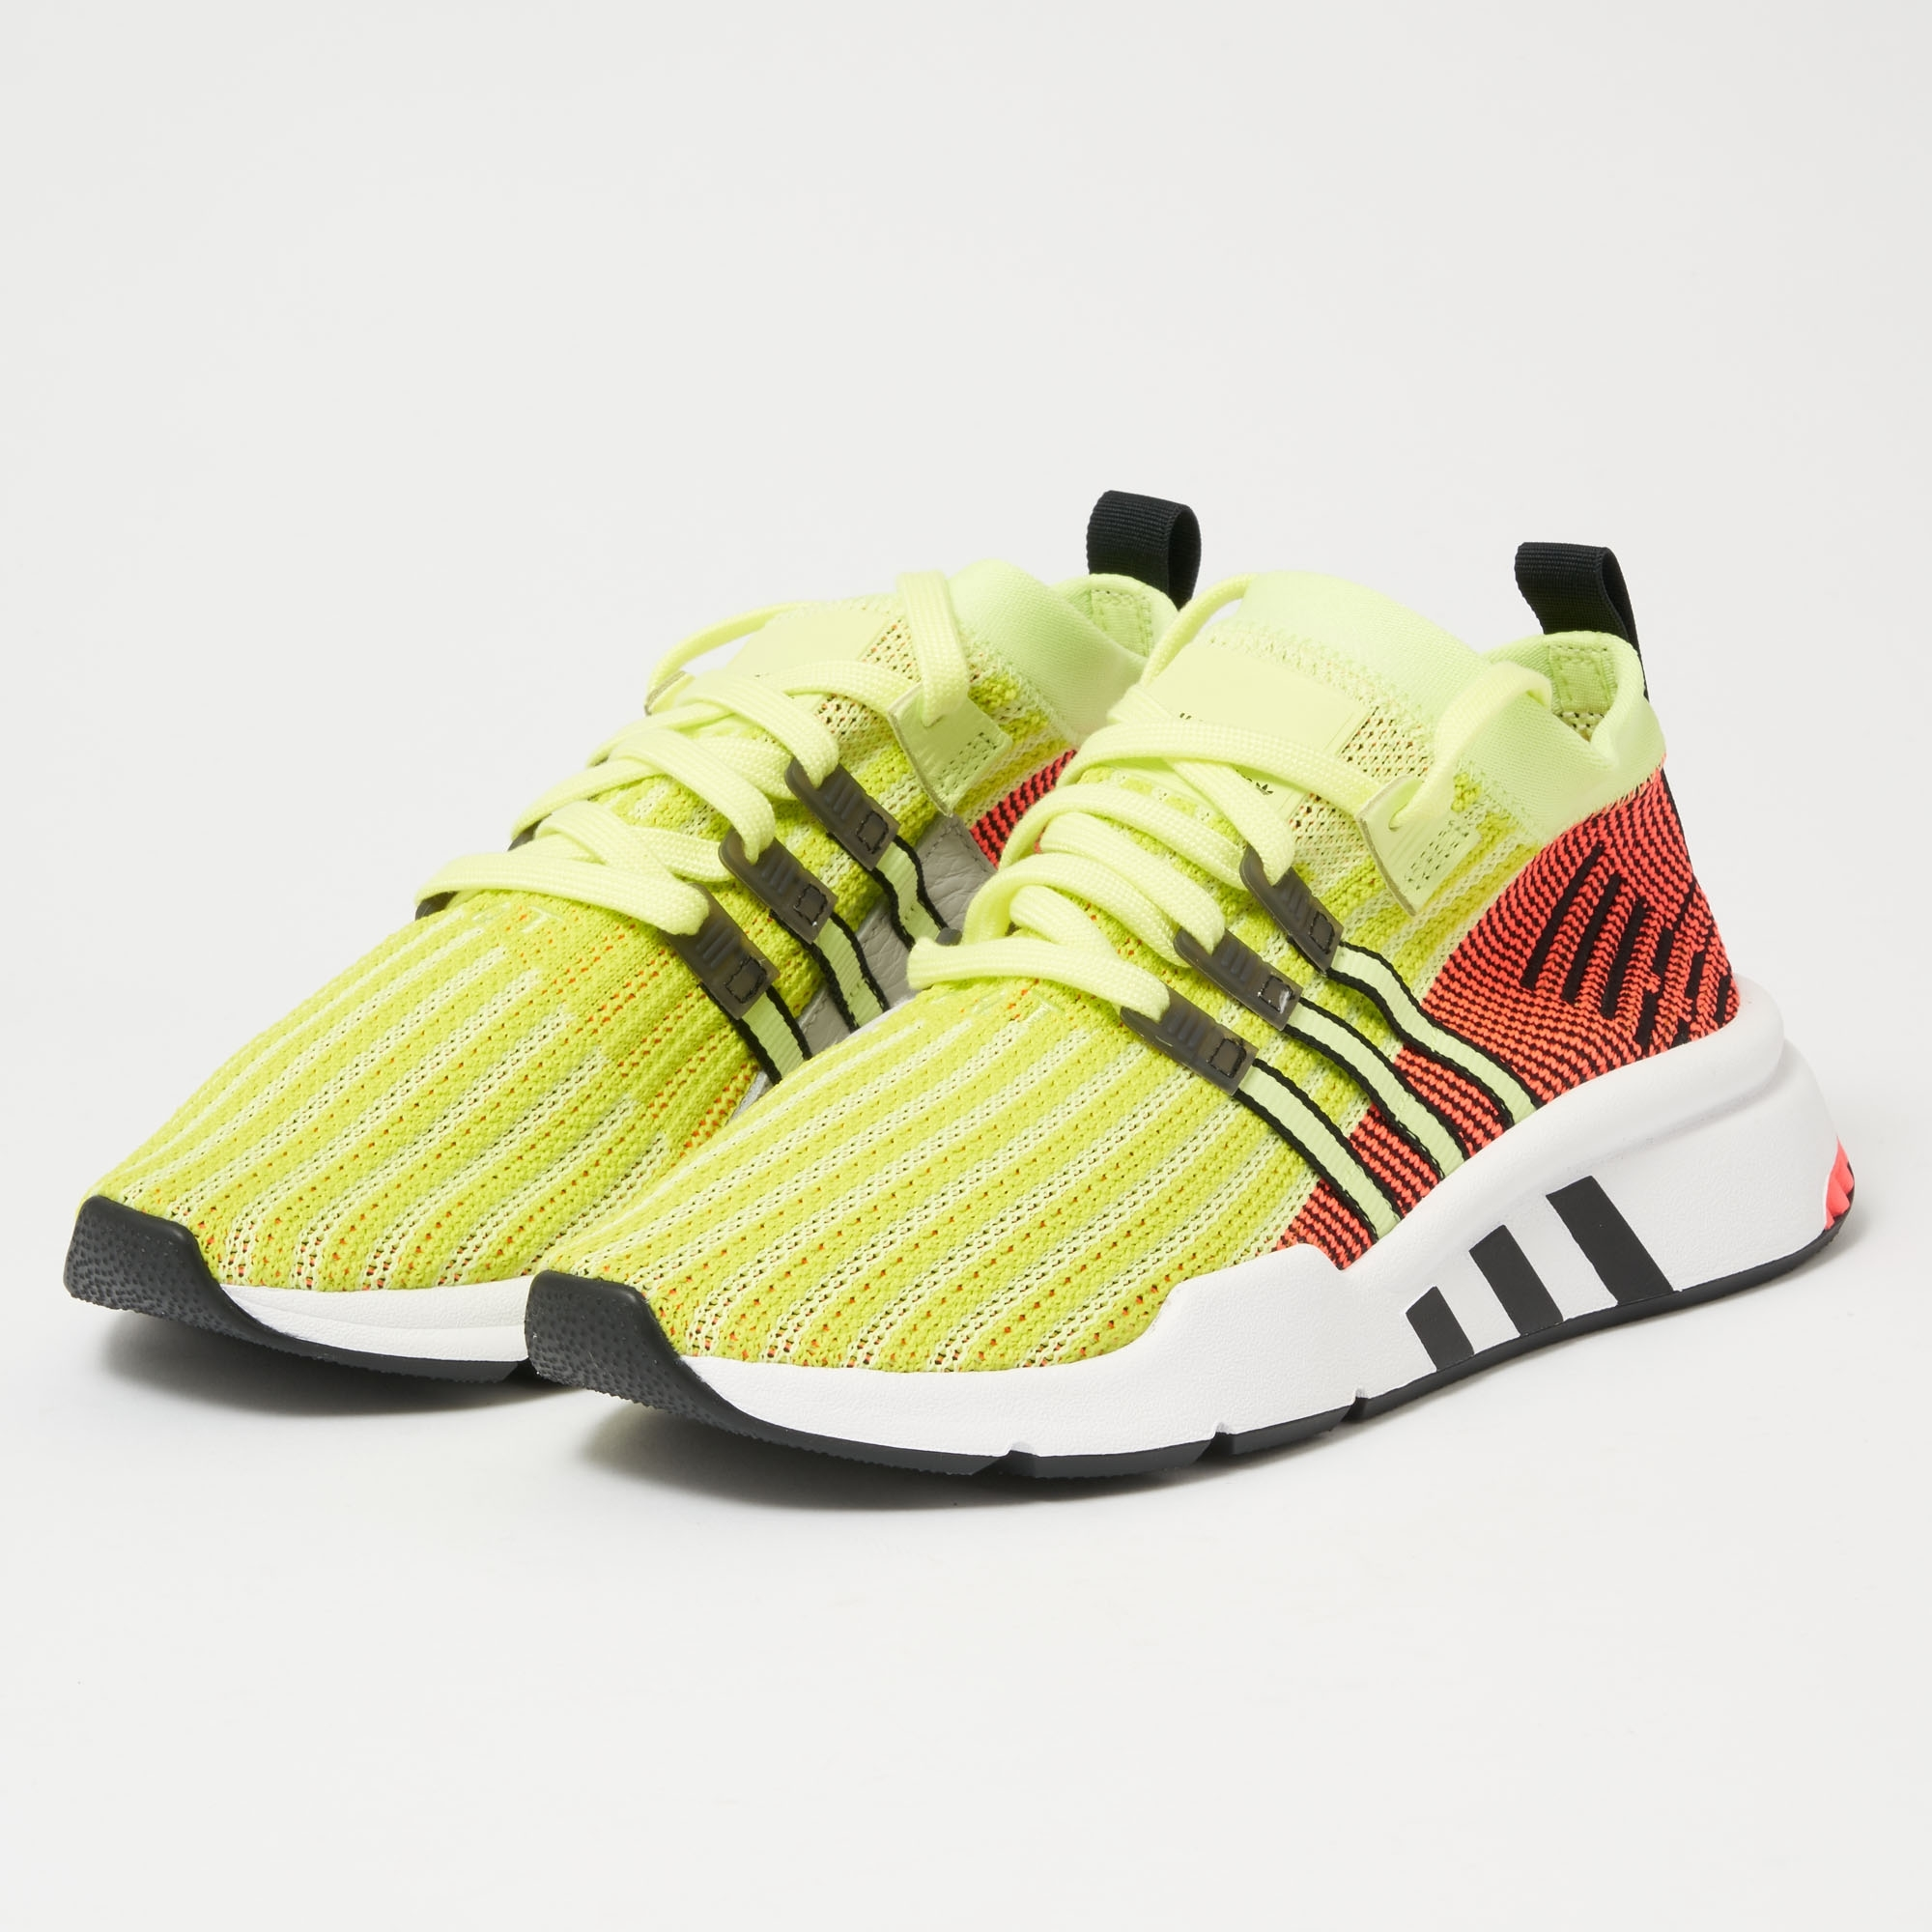 huge selection of 63f93 fba43 EQT Support Mid ADV Primeknit - Glow, Core Black & Turbo